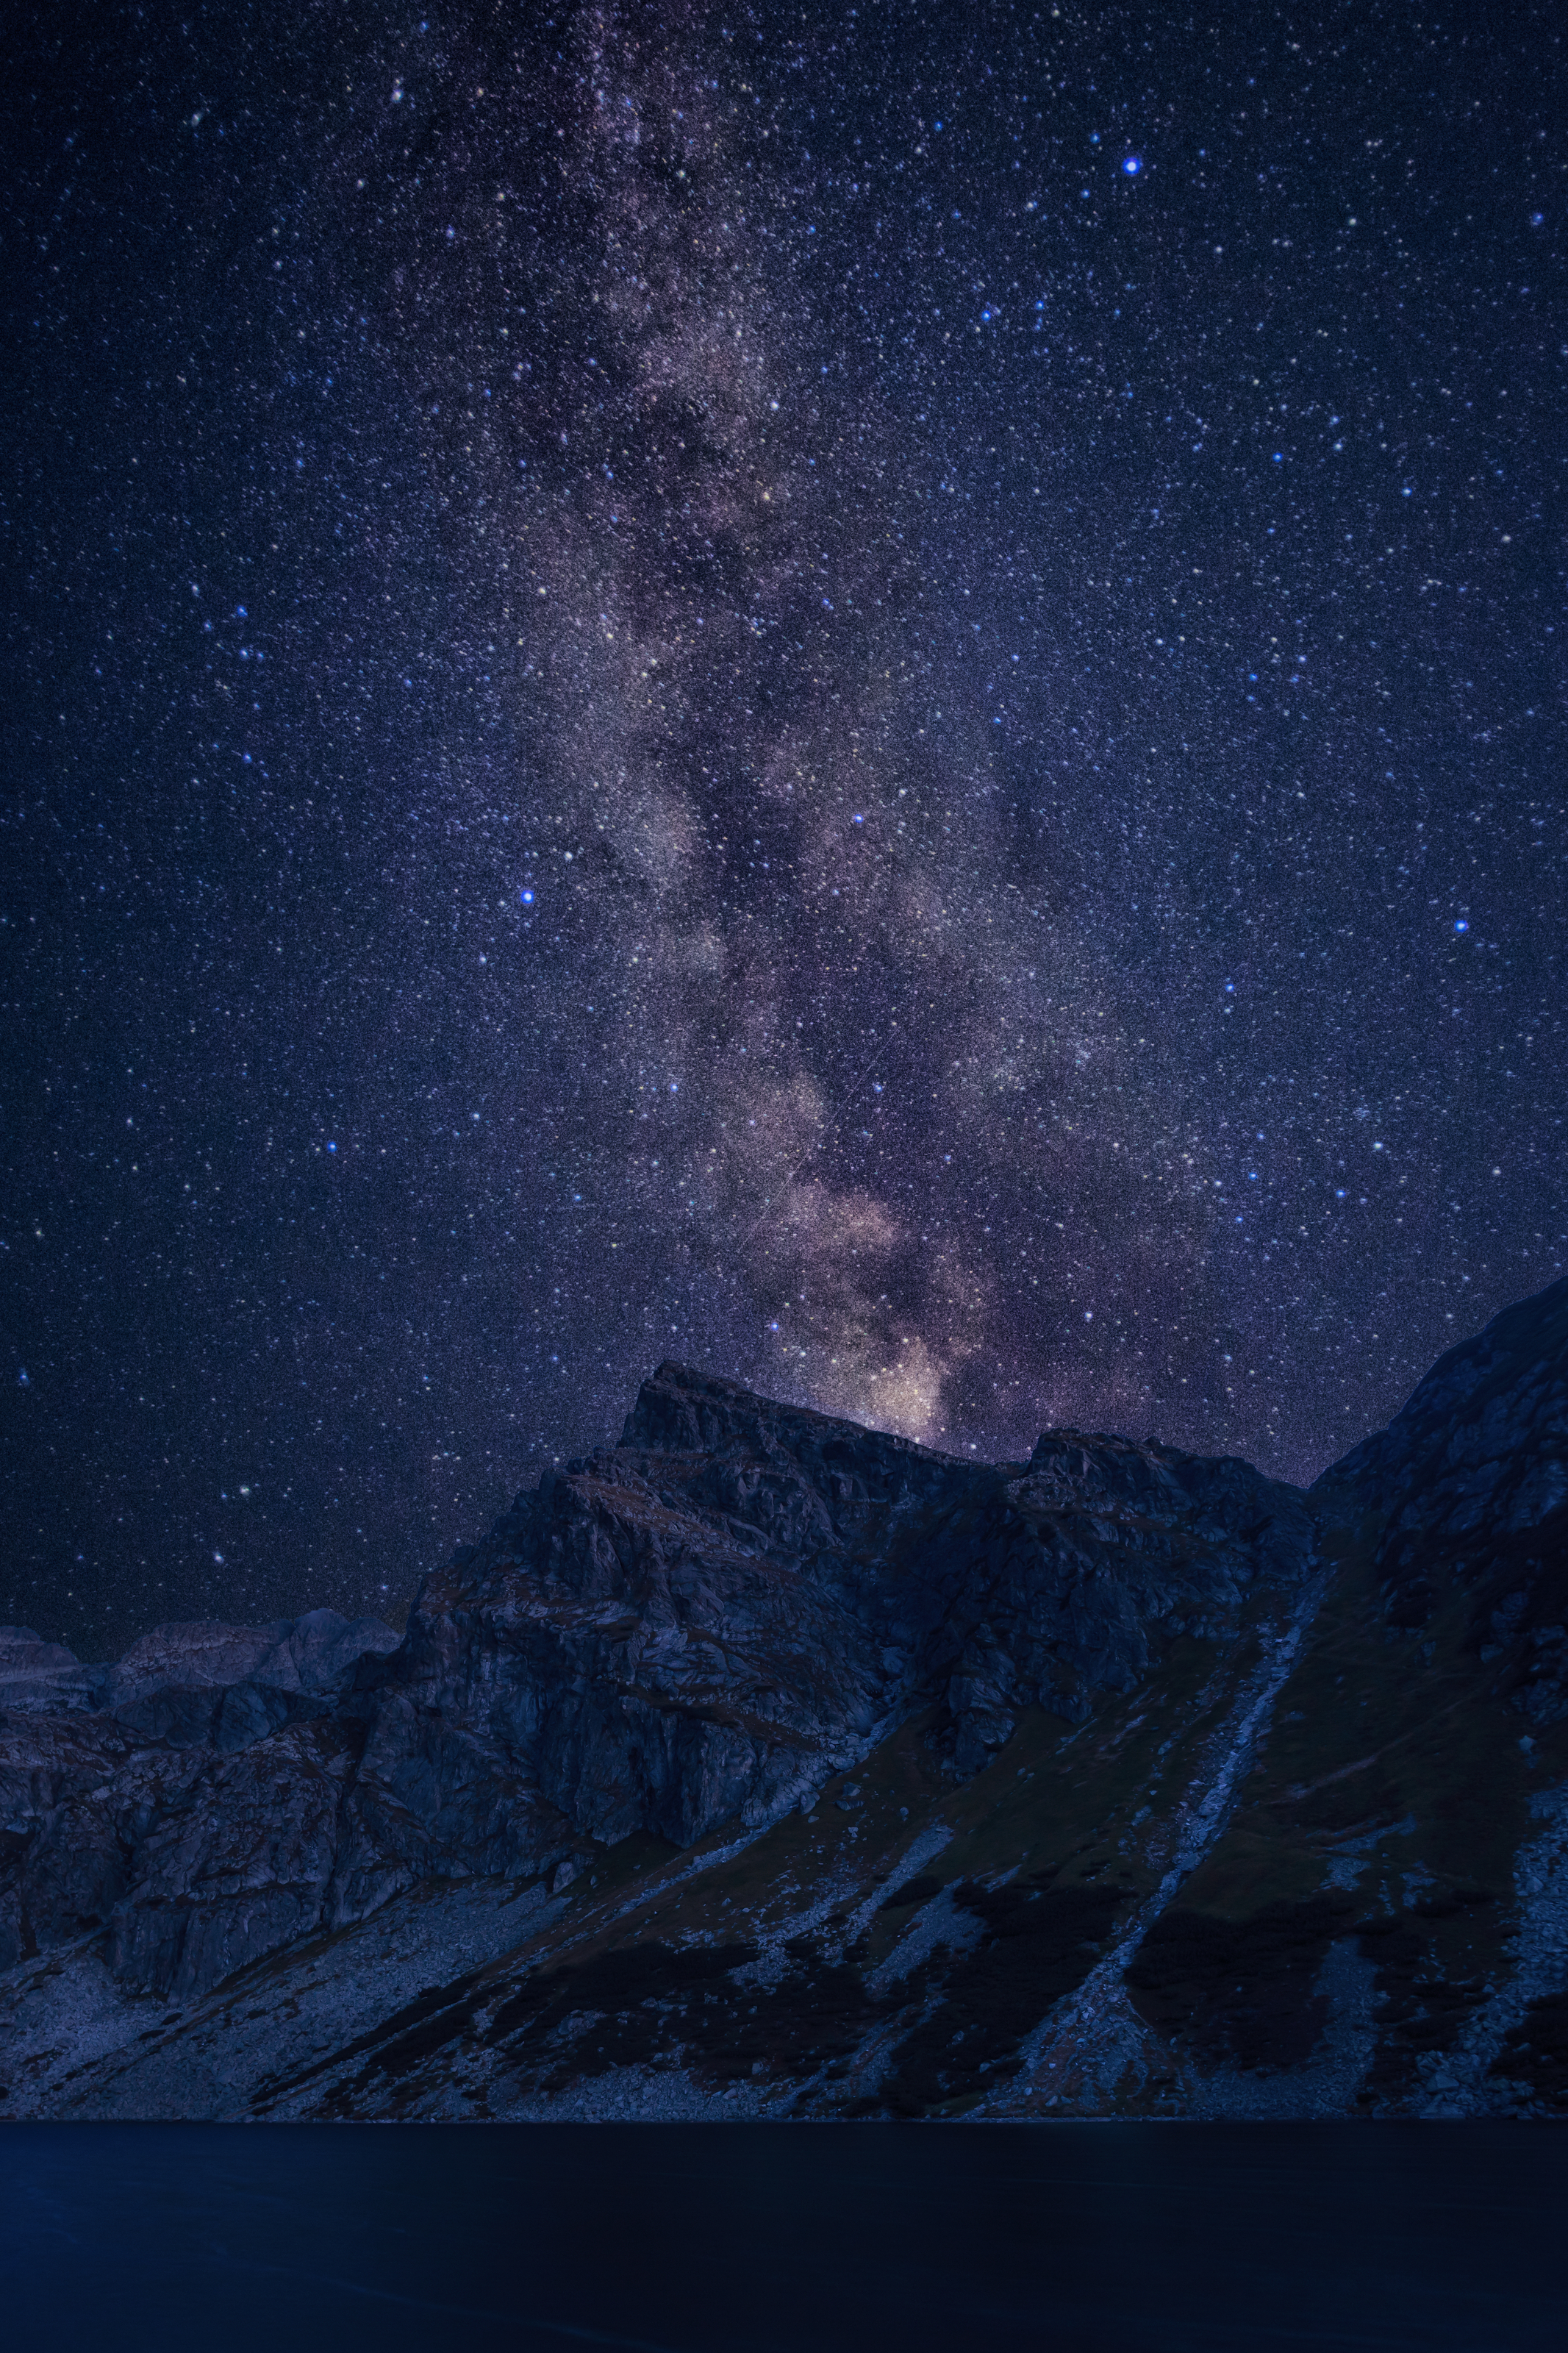 Milky way over Tatras